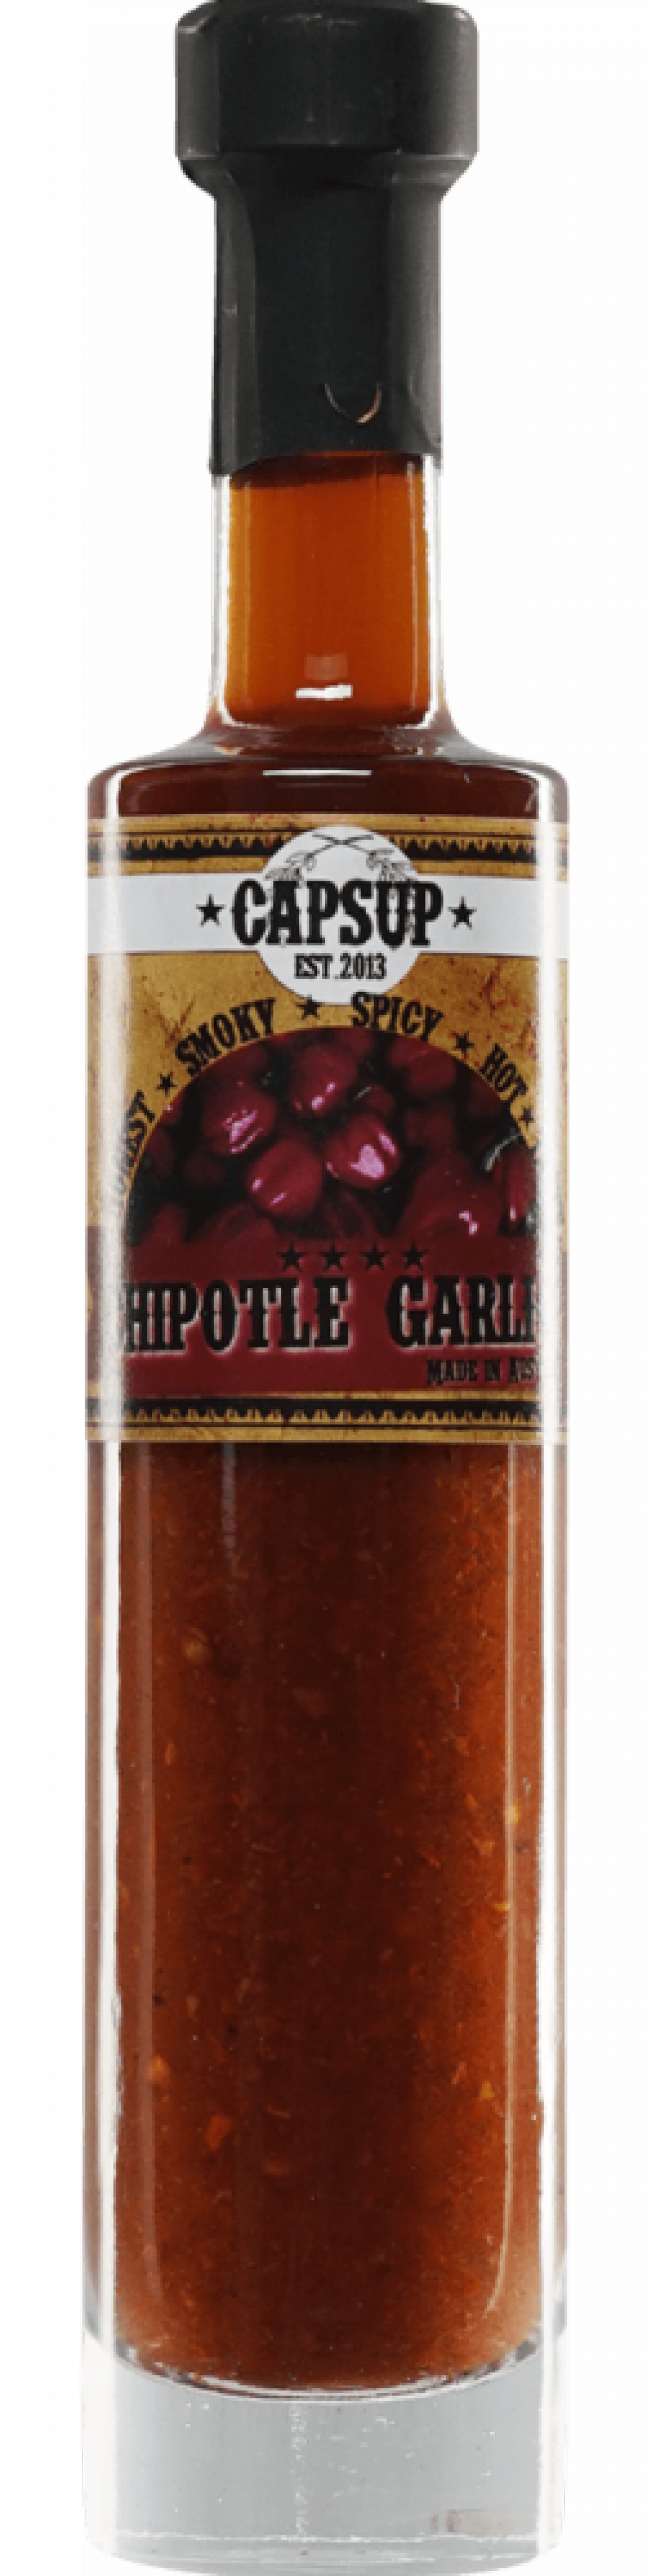 Chipotle & Garlic 100ml